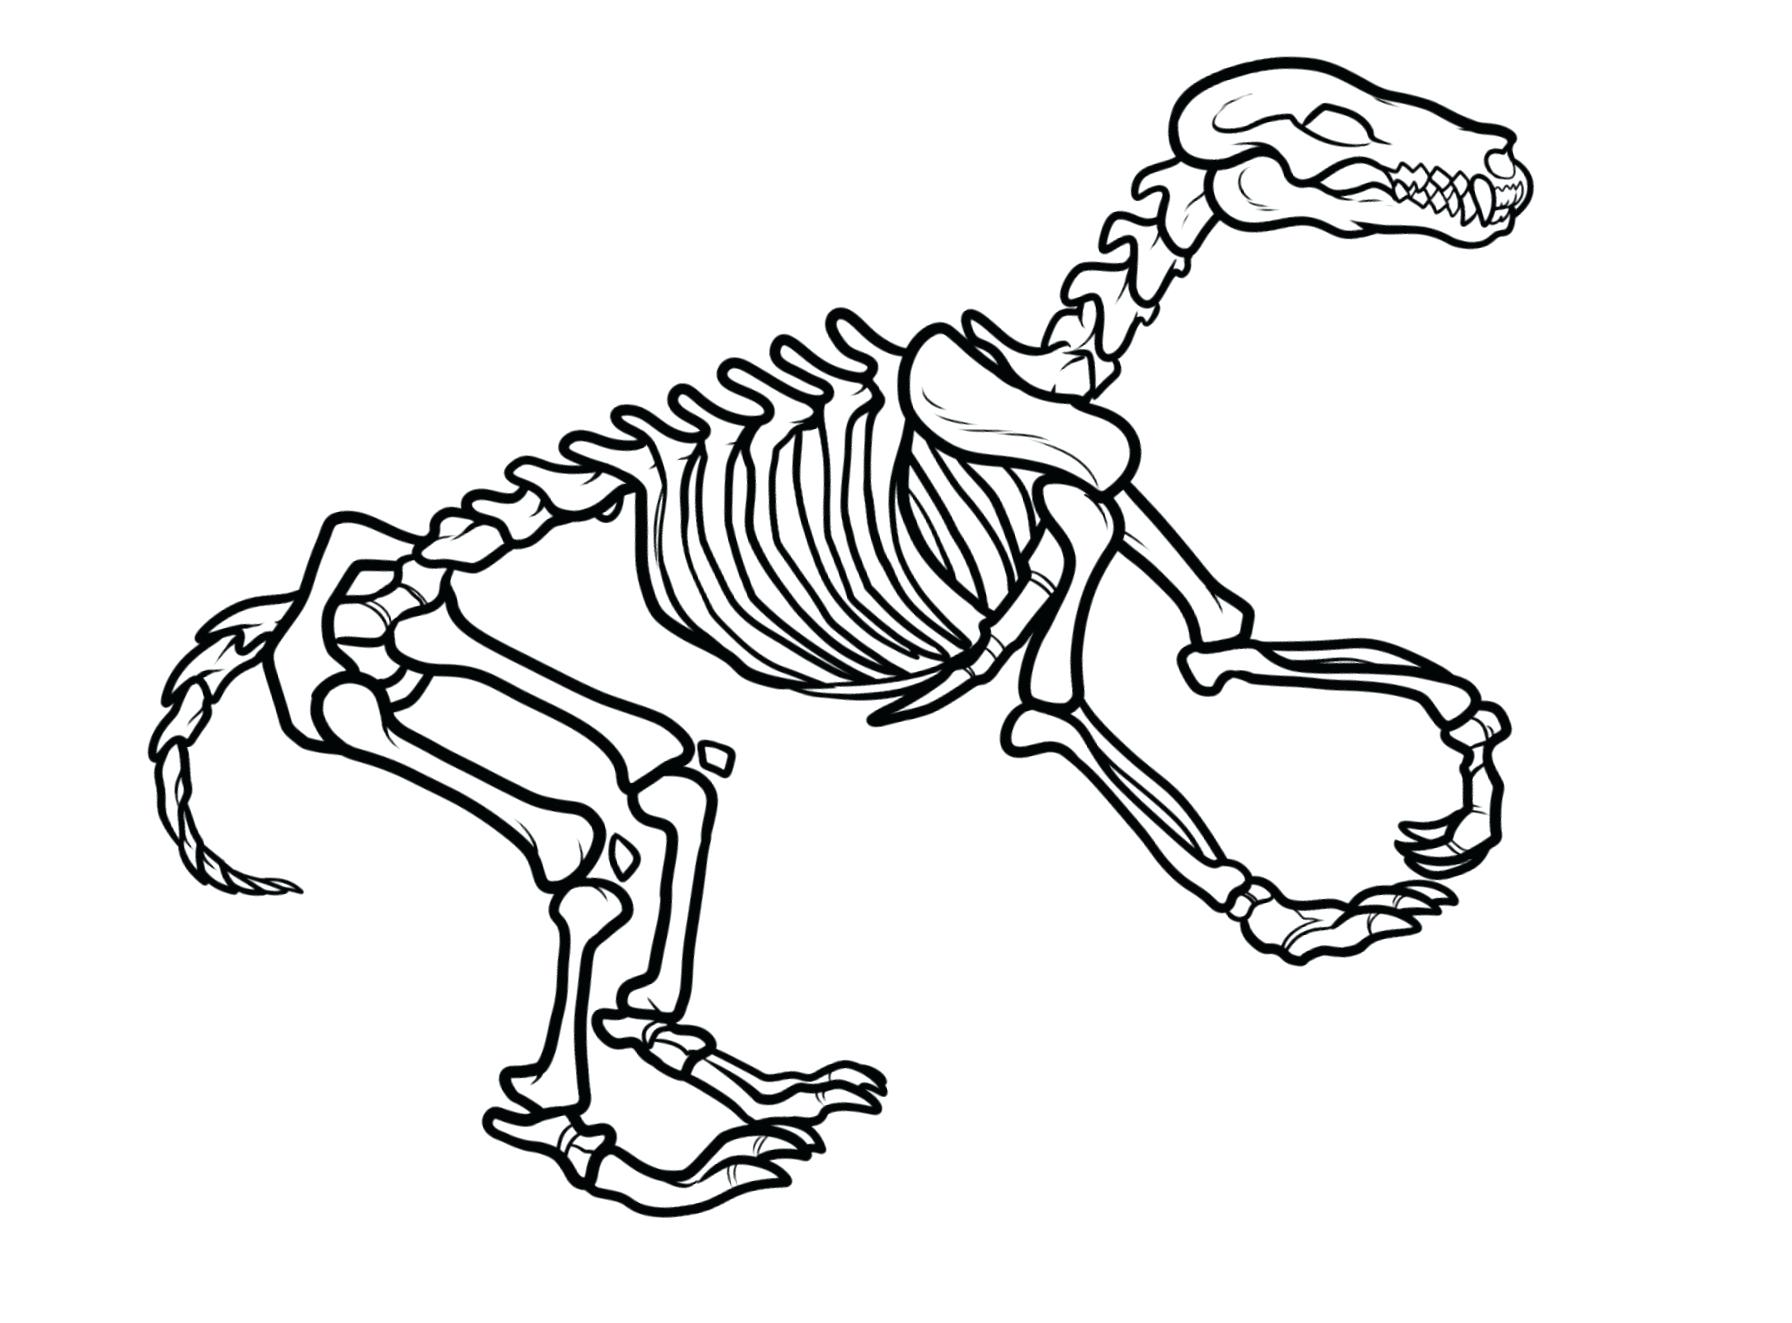 1792x1323 Coloring Fossil Coloring Pages Dinosaur. Fossil Coloring Pages